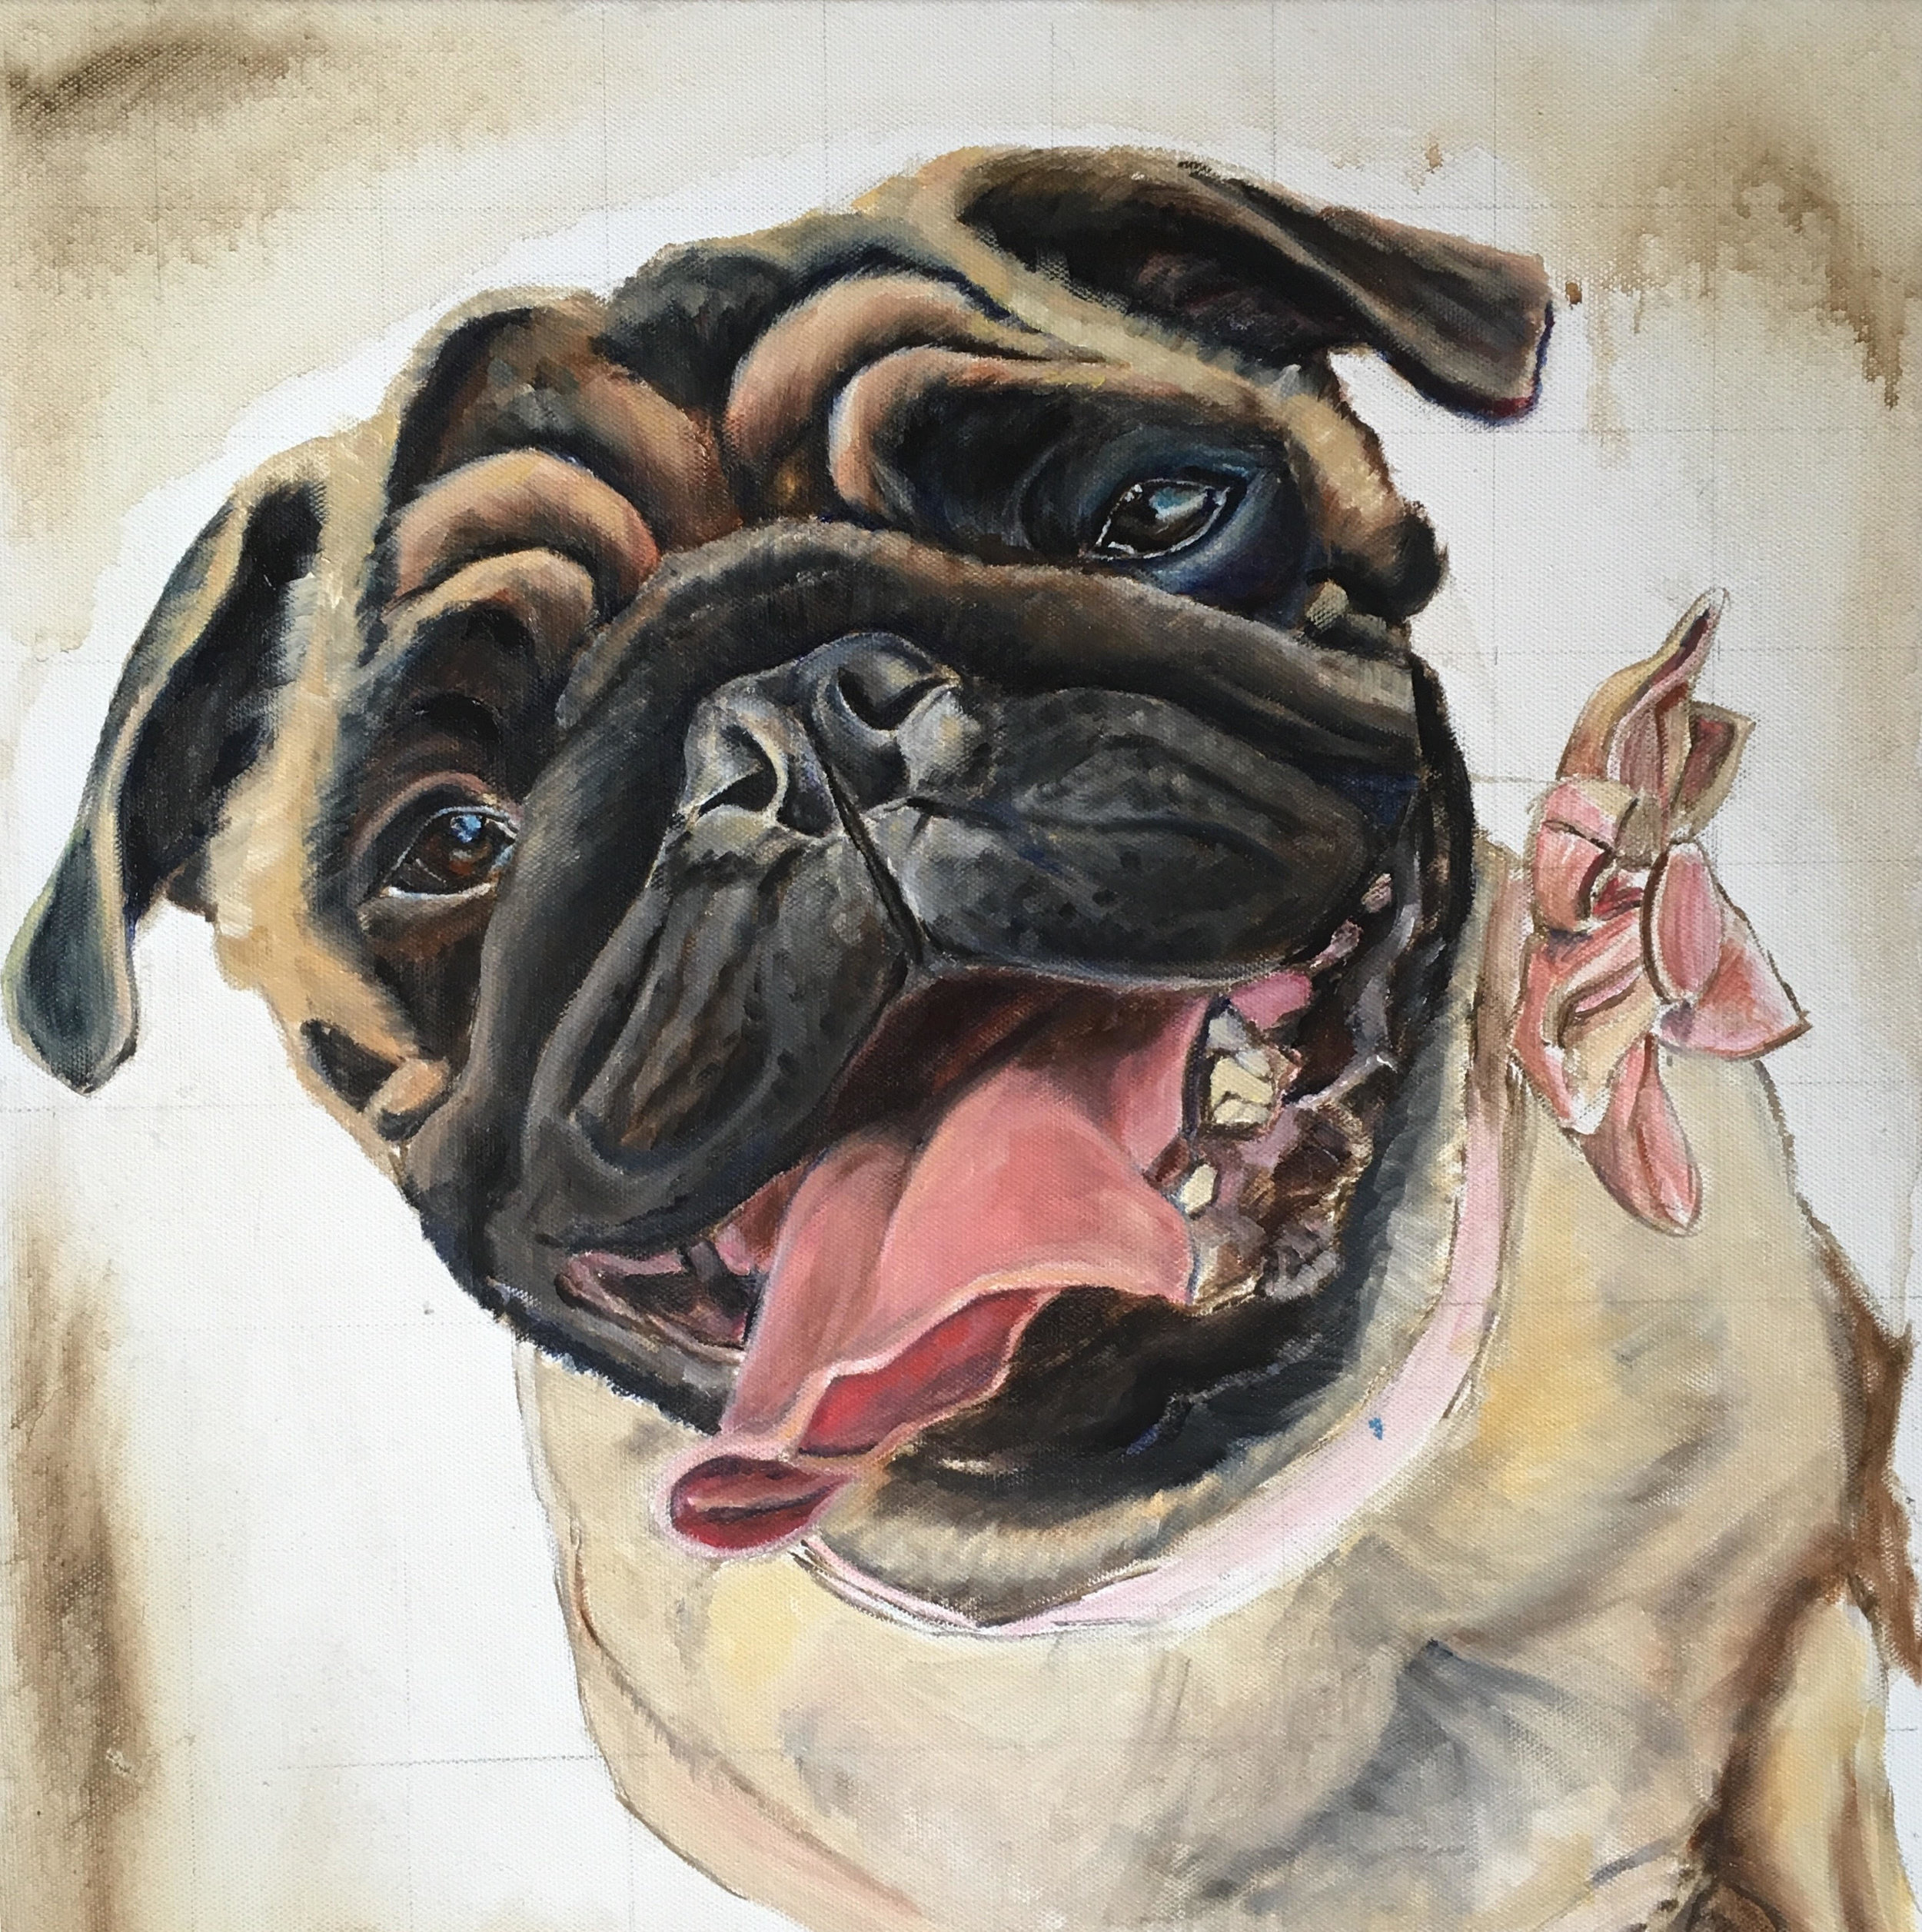 DOG CUSTOM PORTRAIT OF PUG UNDERPAINTING BY OPAL PASTRO ART